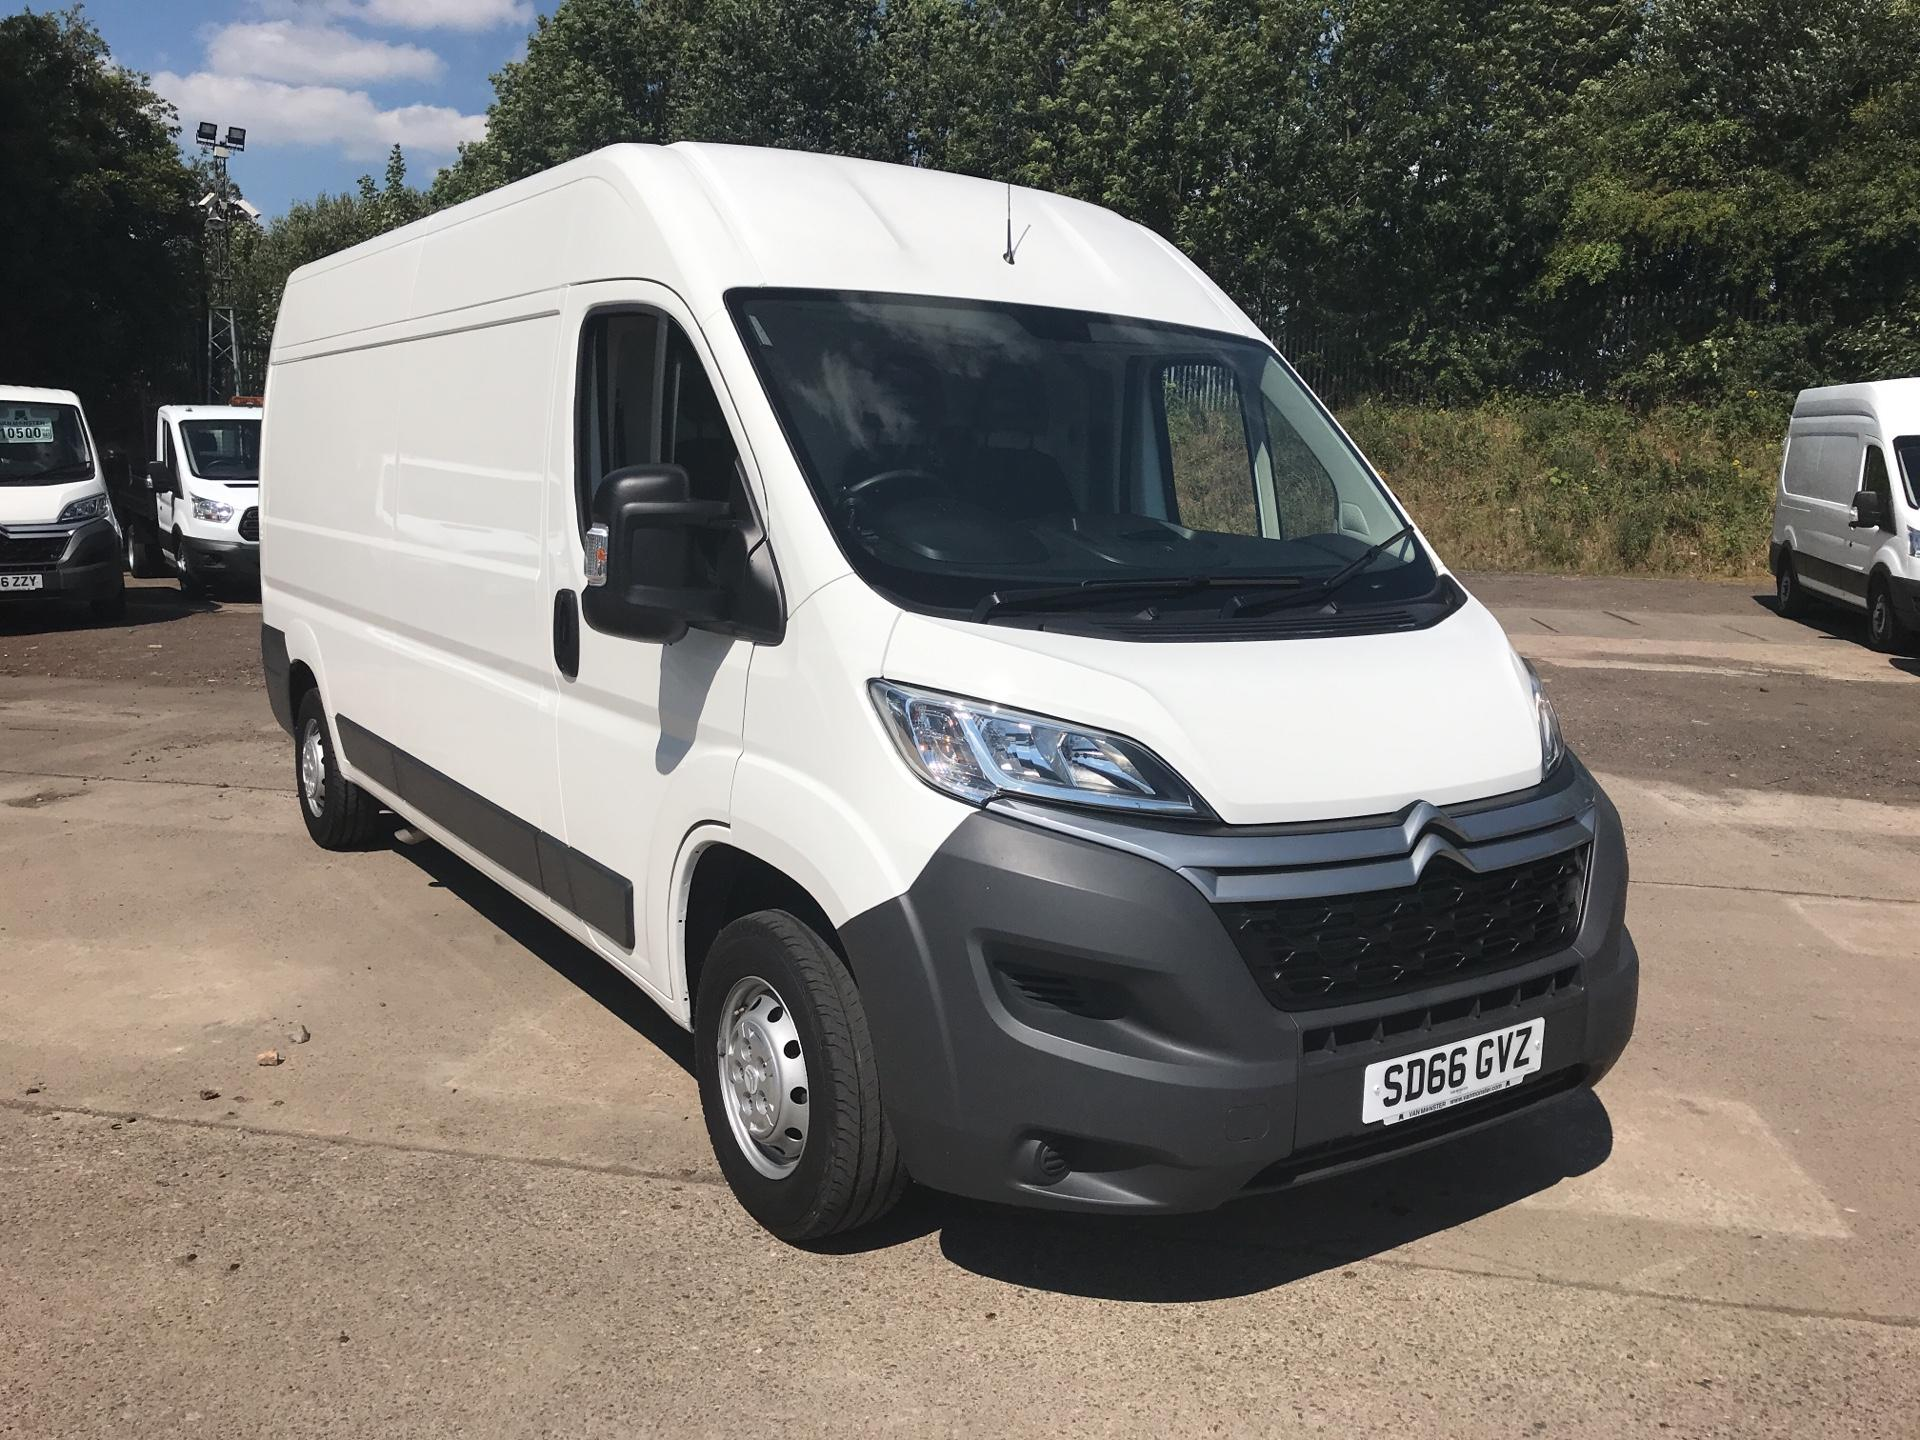 2016 Citroen Relay 35 L3 H2 2.0 BLUEHDI 130PS ENTERPRISE EURO 6 (SD66GVZ)